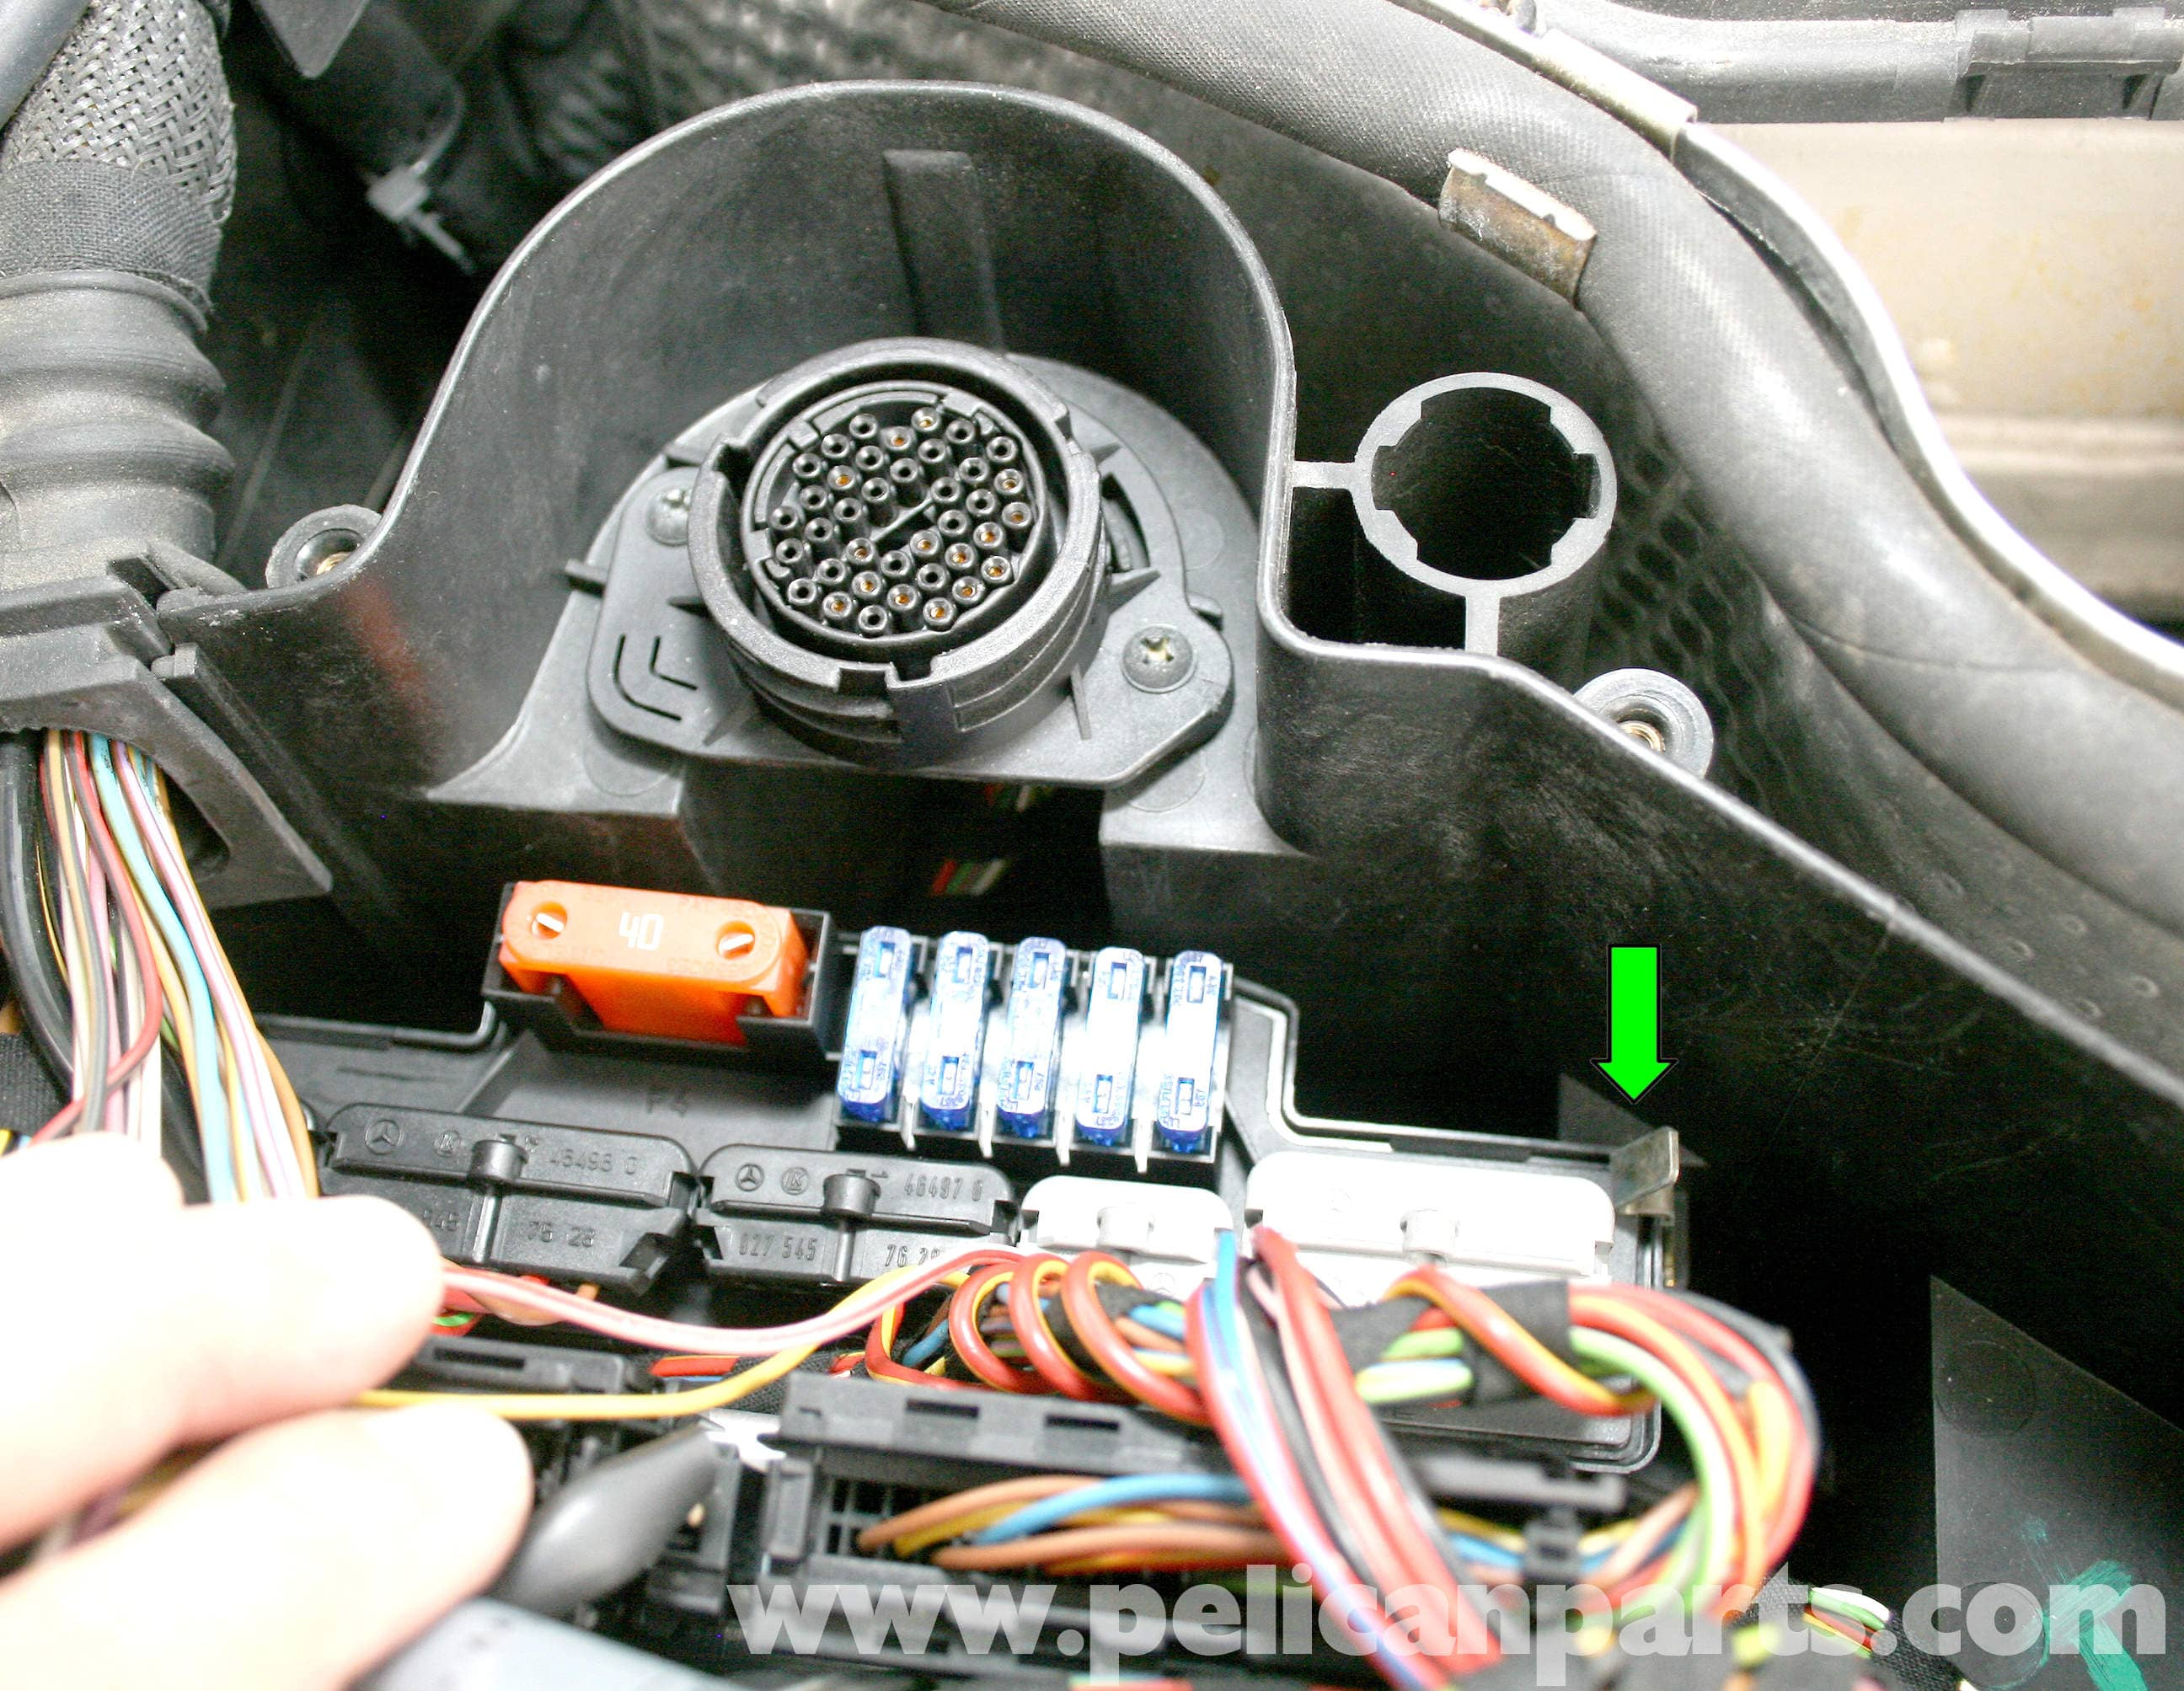 Mercedes Benz Slk 230 K40 Overload Protection Relay Repair 1998 Car Fuse Box Troubleshooting Large Image Extra